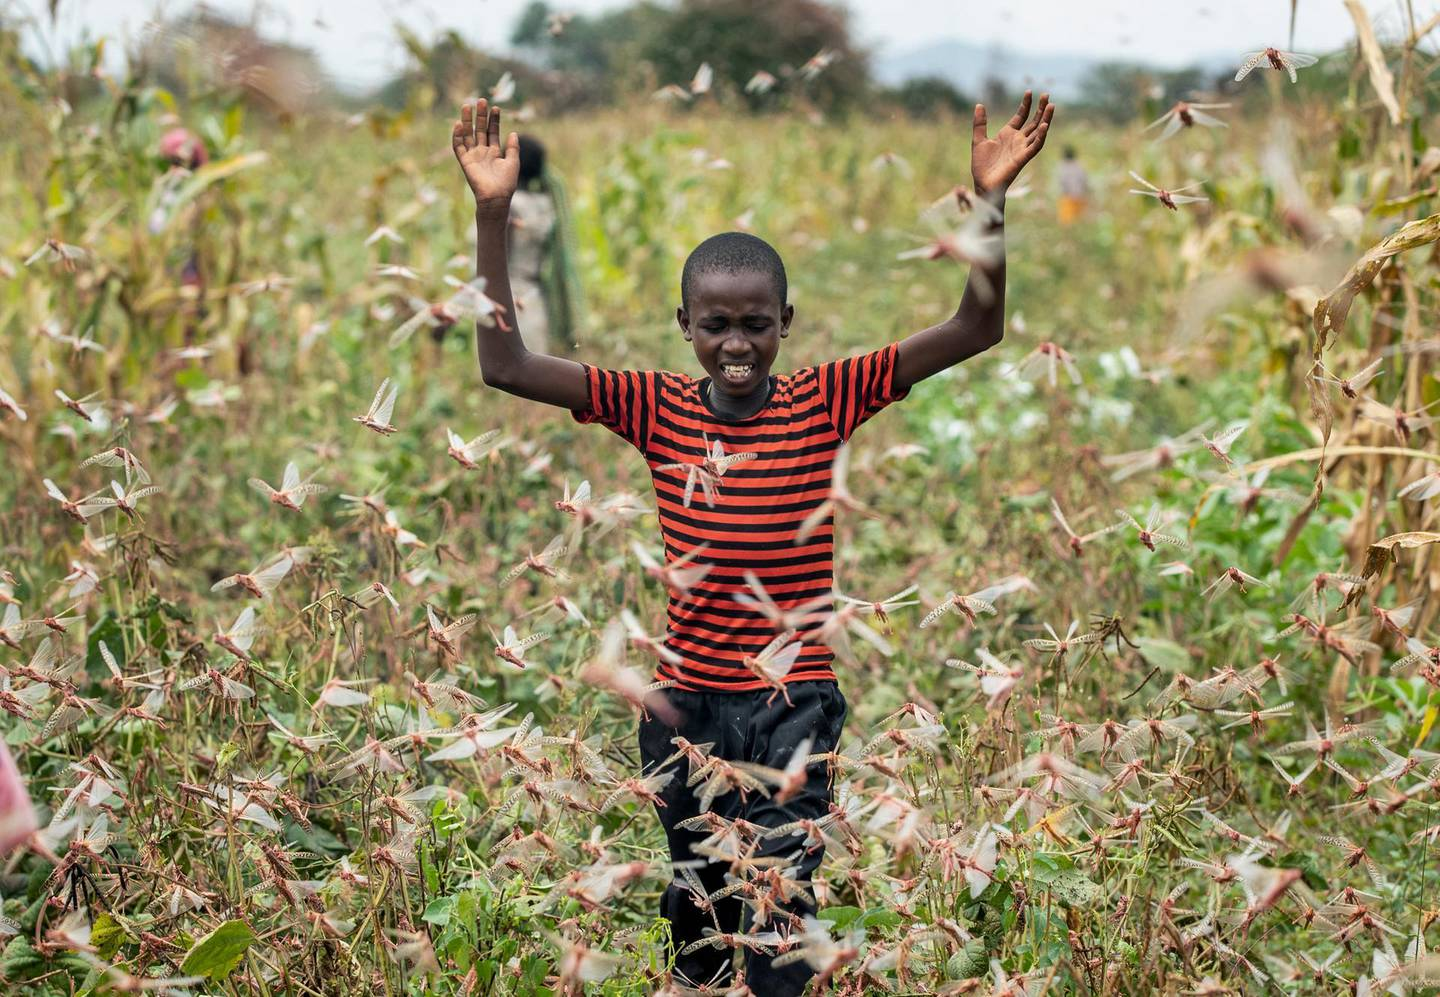 A farmer's son raises his arms as he is surrounded by desert locusts while trying to chase them away from his crops, in Katitika village, Kitui county, Kenya Friday, Jan. 24, 2020. Desert locusts have swarmed into Kenya by the hundreds of millions from Somalia and Ethiopia, countries that haven't seen such numbers in a quarter-century, destroying farmland and threatening an already vulnerable region. (AP Photo/Ben Curtis)